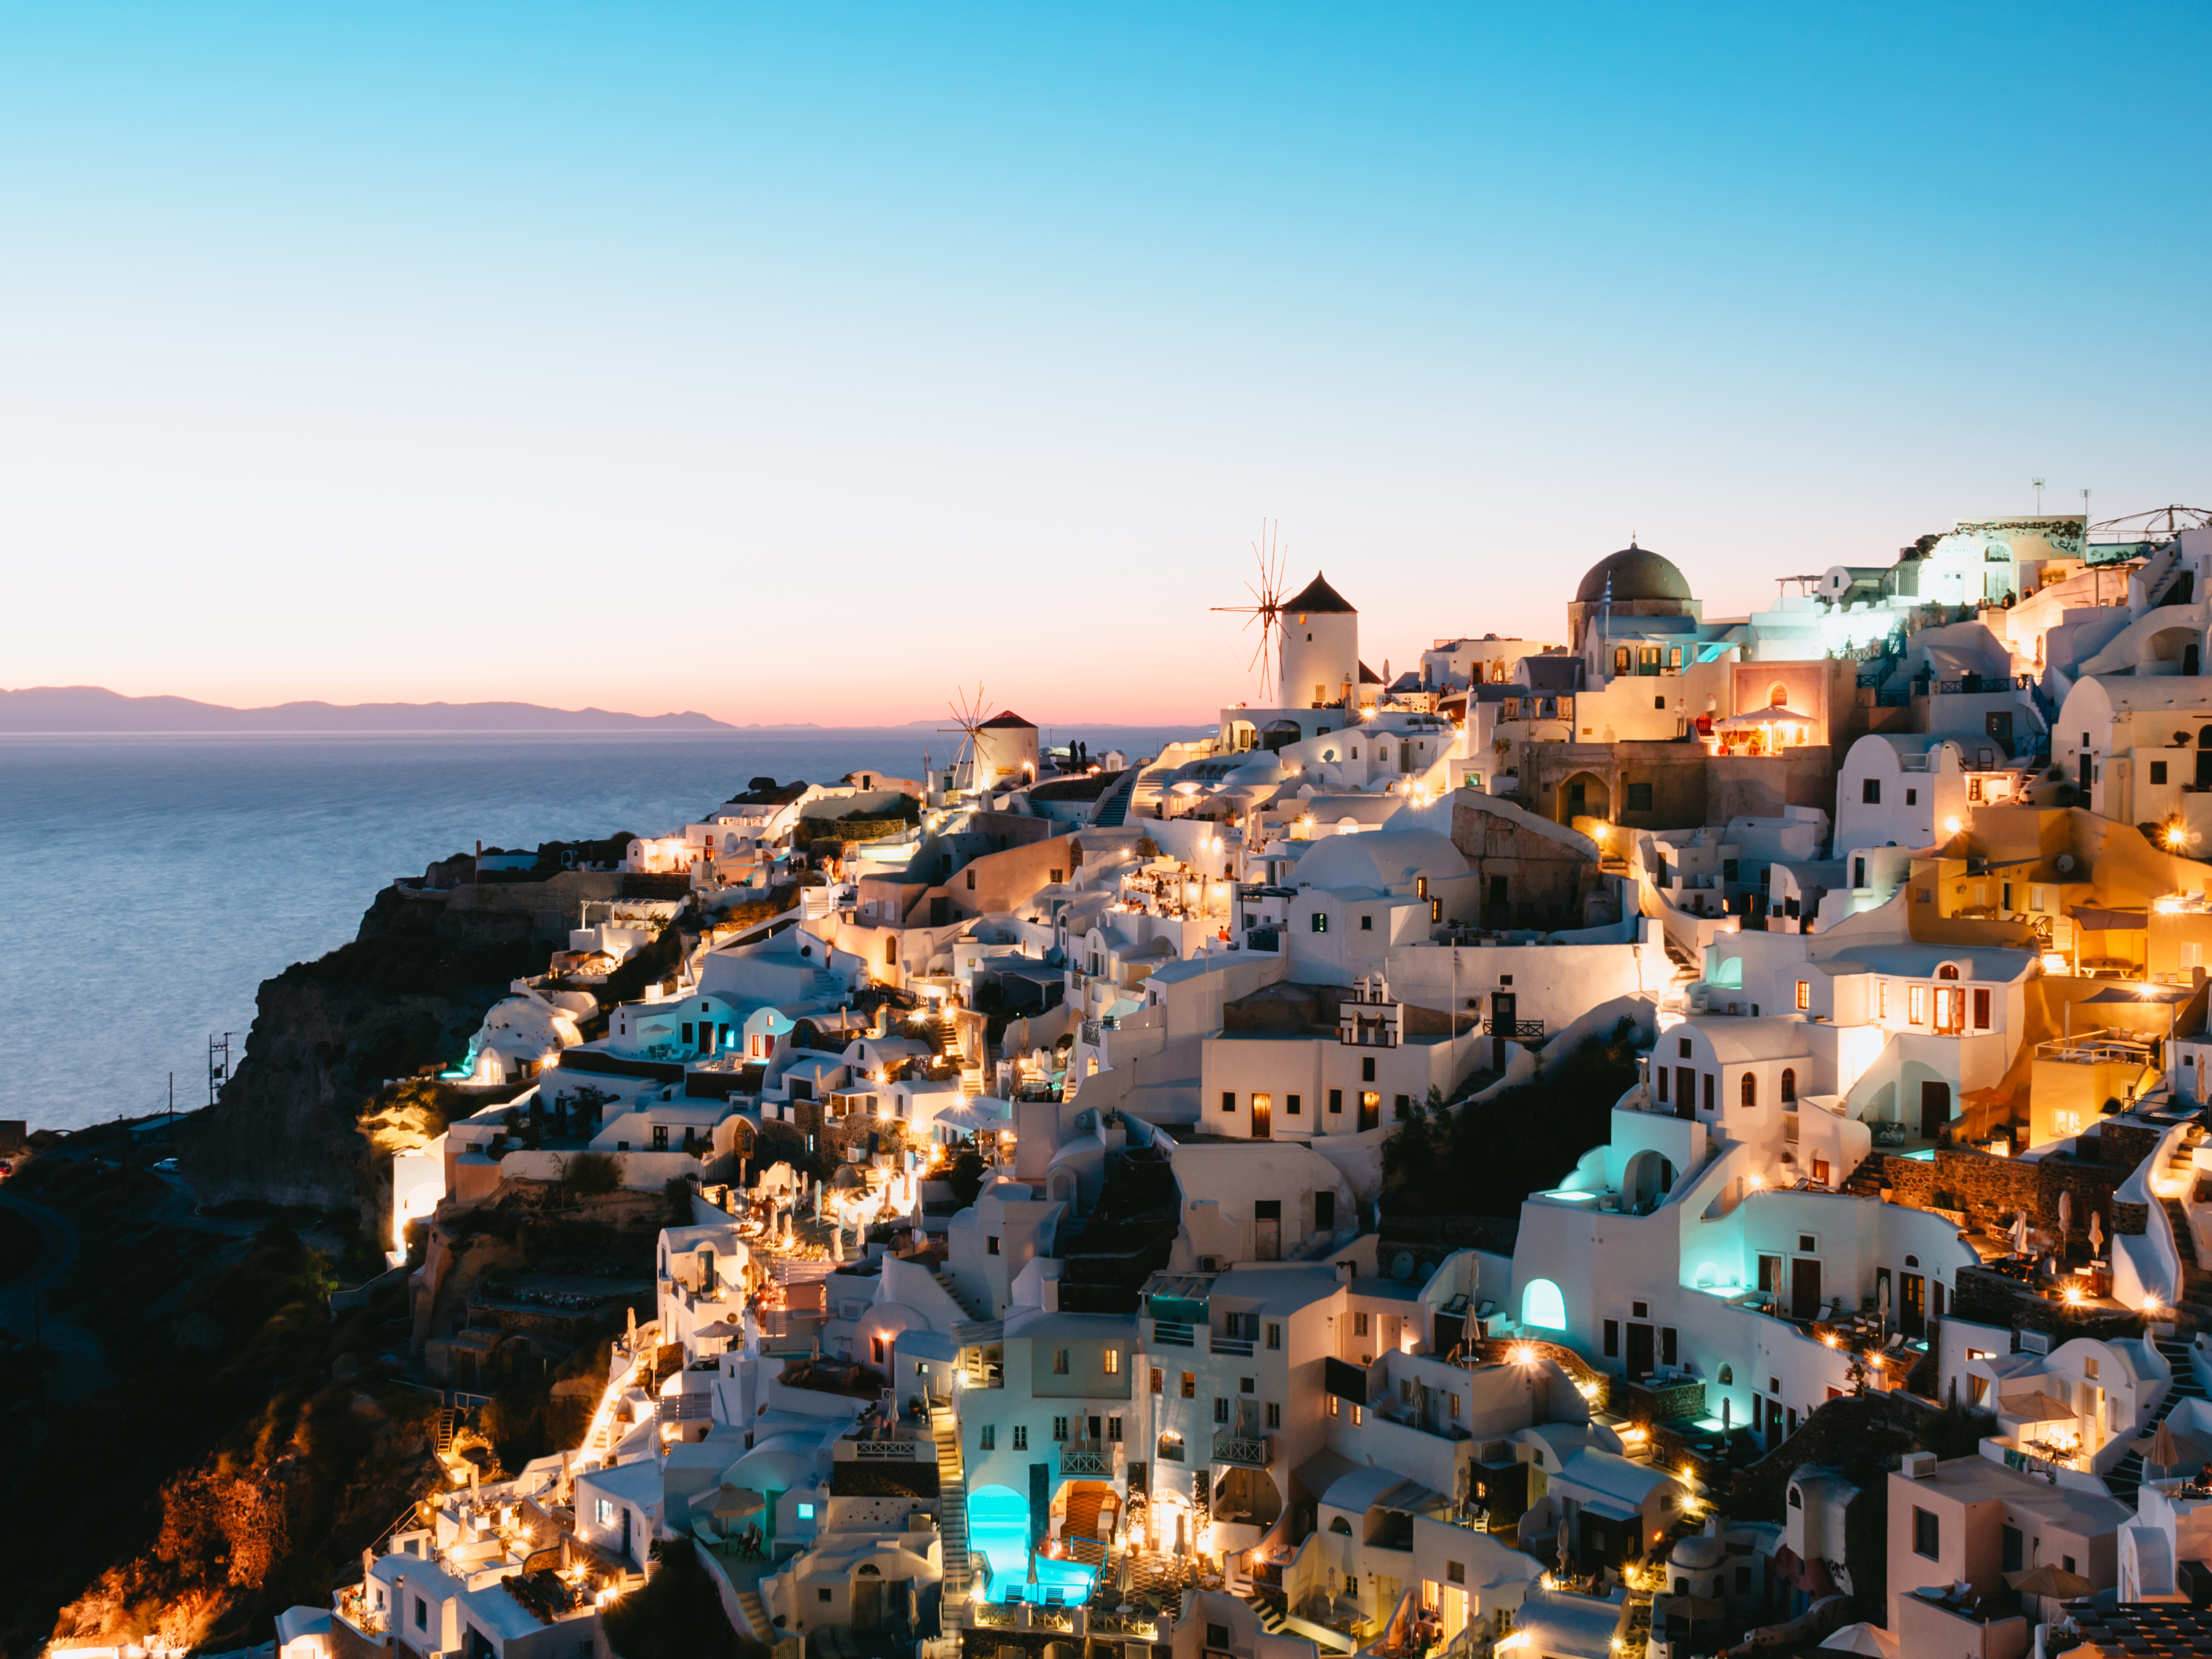 The views in Greece are unparalleled. If you're planning a vacation to the Greek Islands, here's everything you need to know. You will love it there!